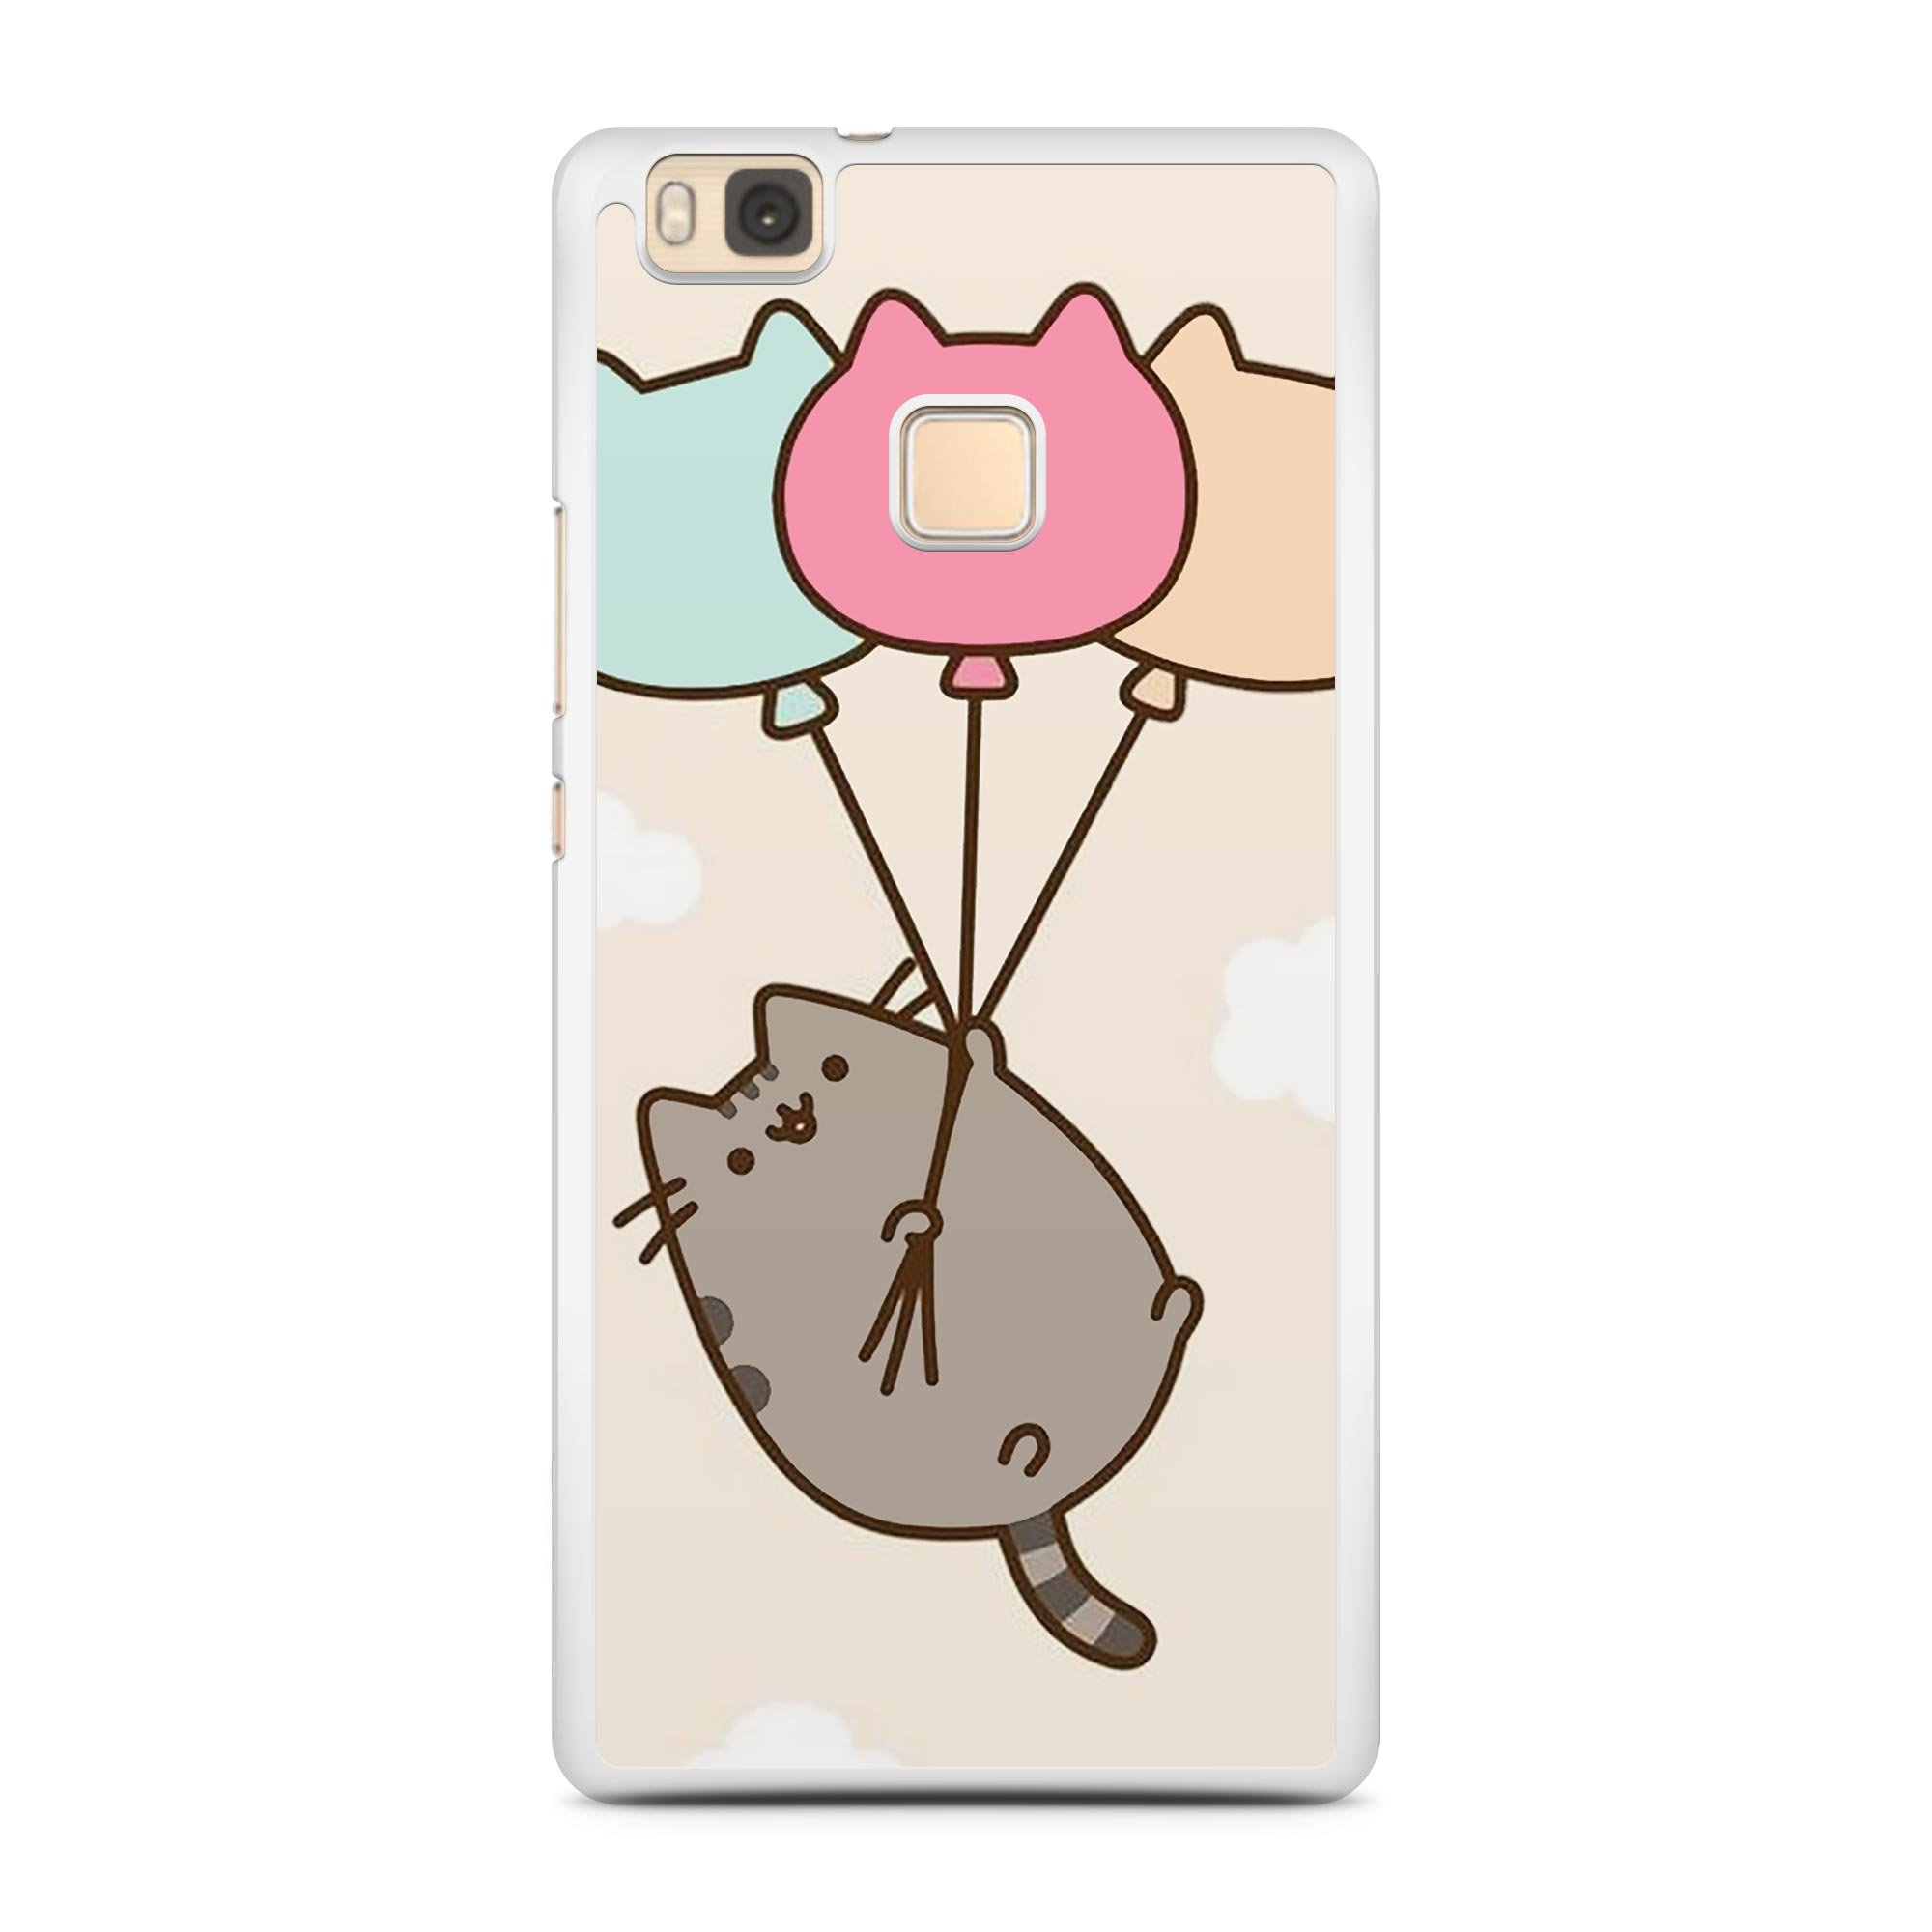 PUSHEEN BALLOON CAT HARD PHONE CASE COVER FITS ALL for 2D Huawei ...